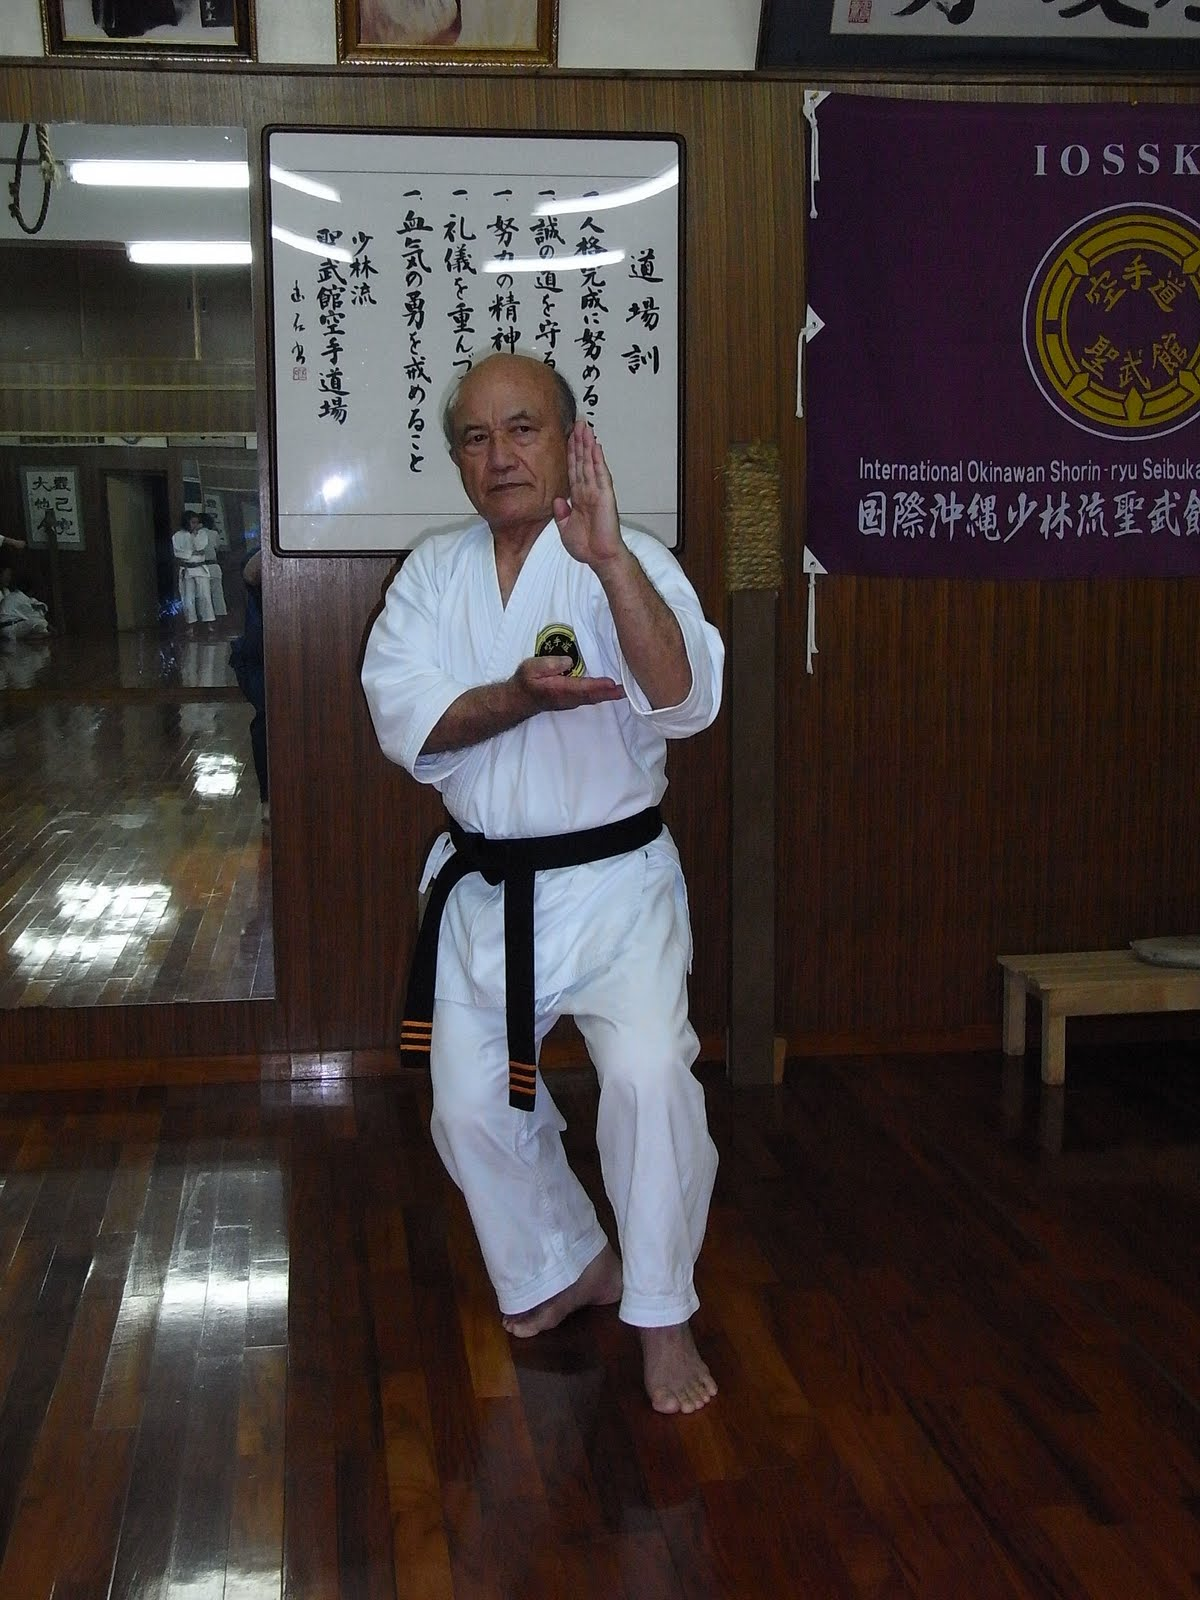 of the seibukan shorin ryu